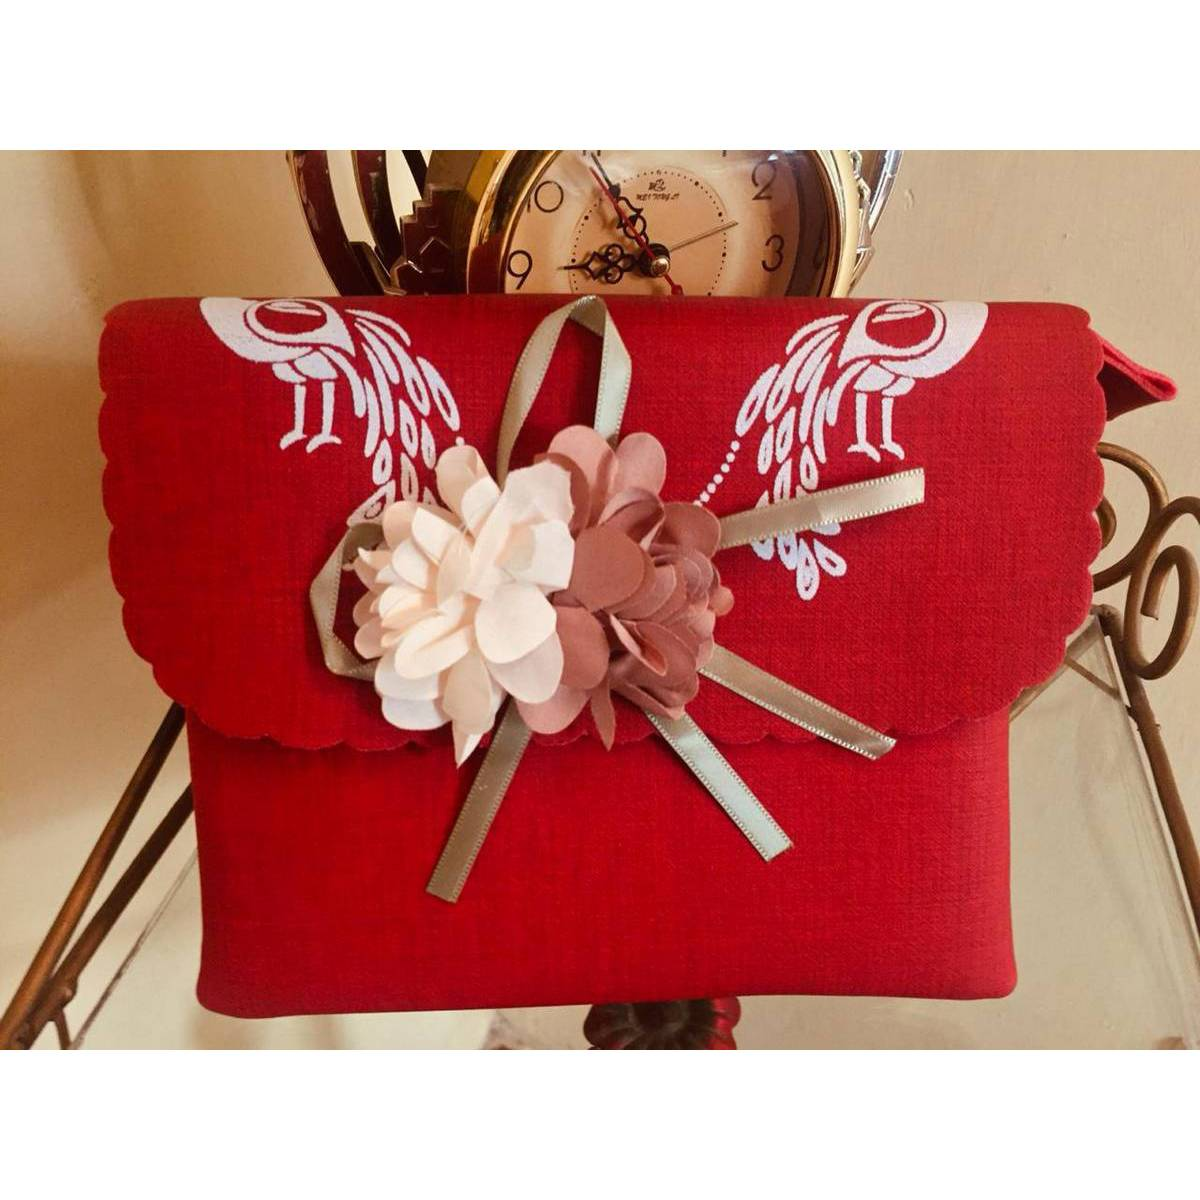 glamorous handsome leather stylish hand bags for college girls and for party small sixe handbag in red color red stylish purse with long stirp shoulder and hand carry